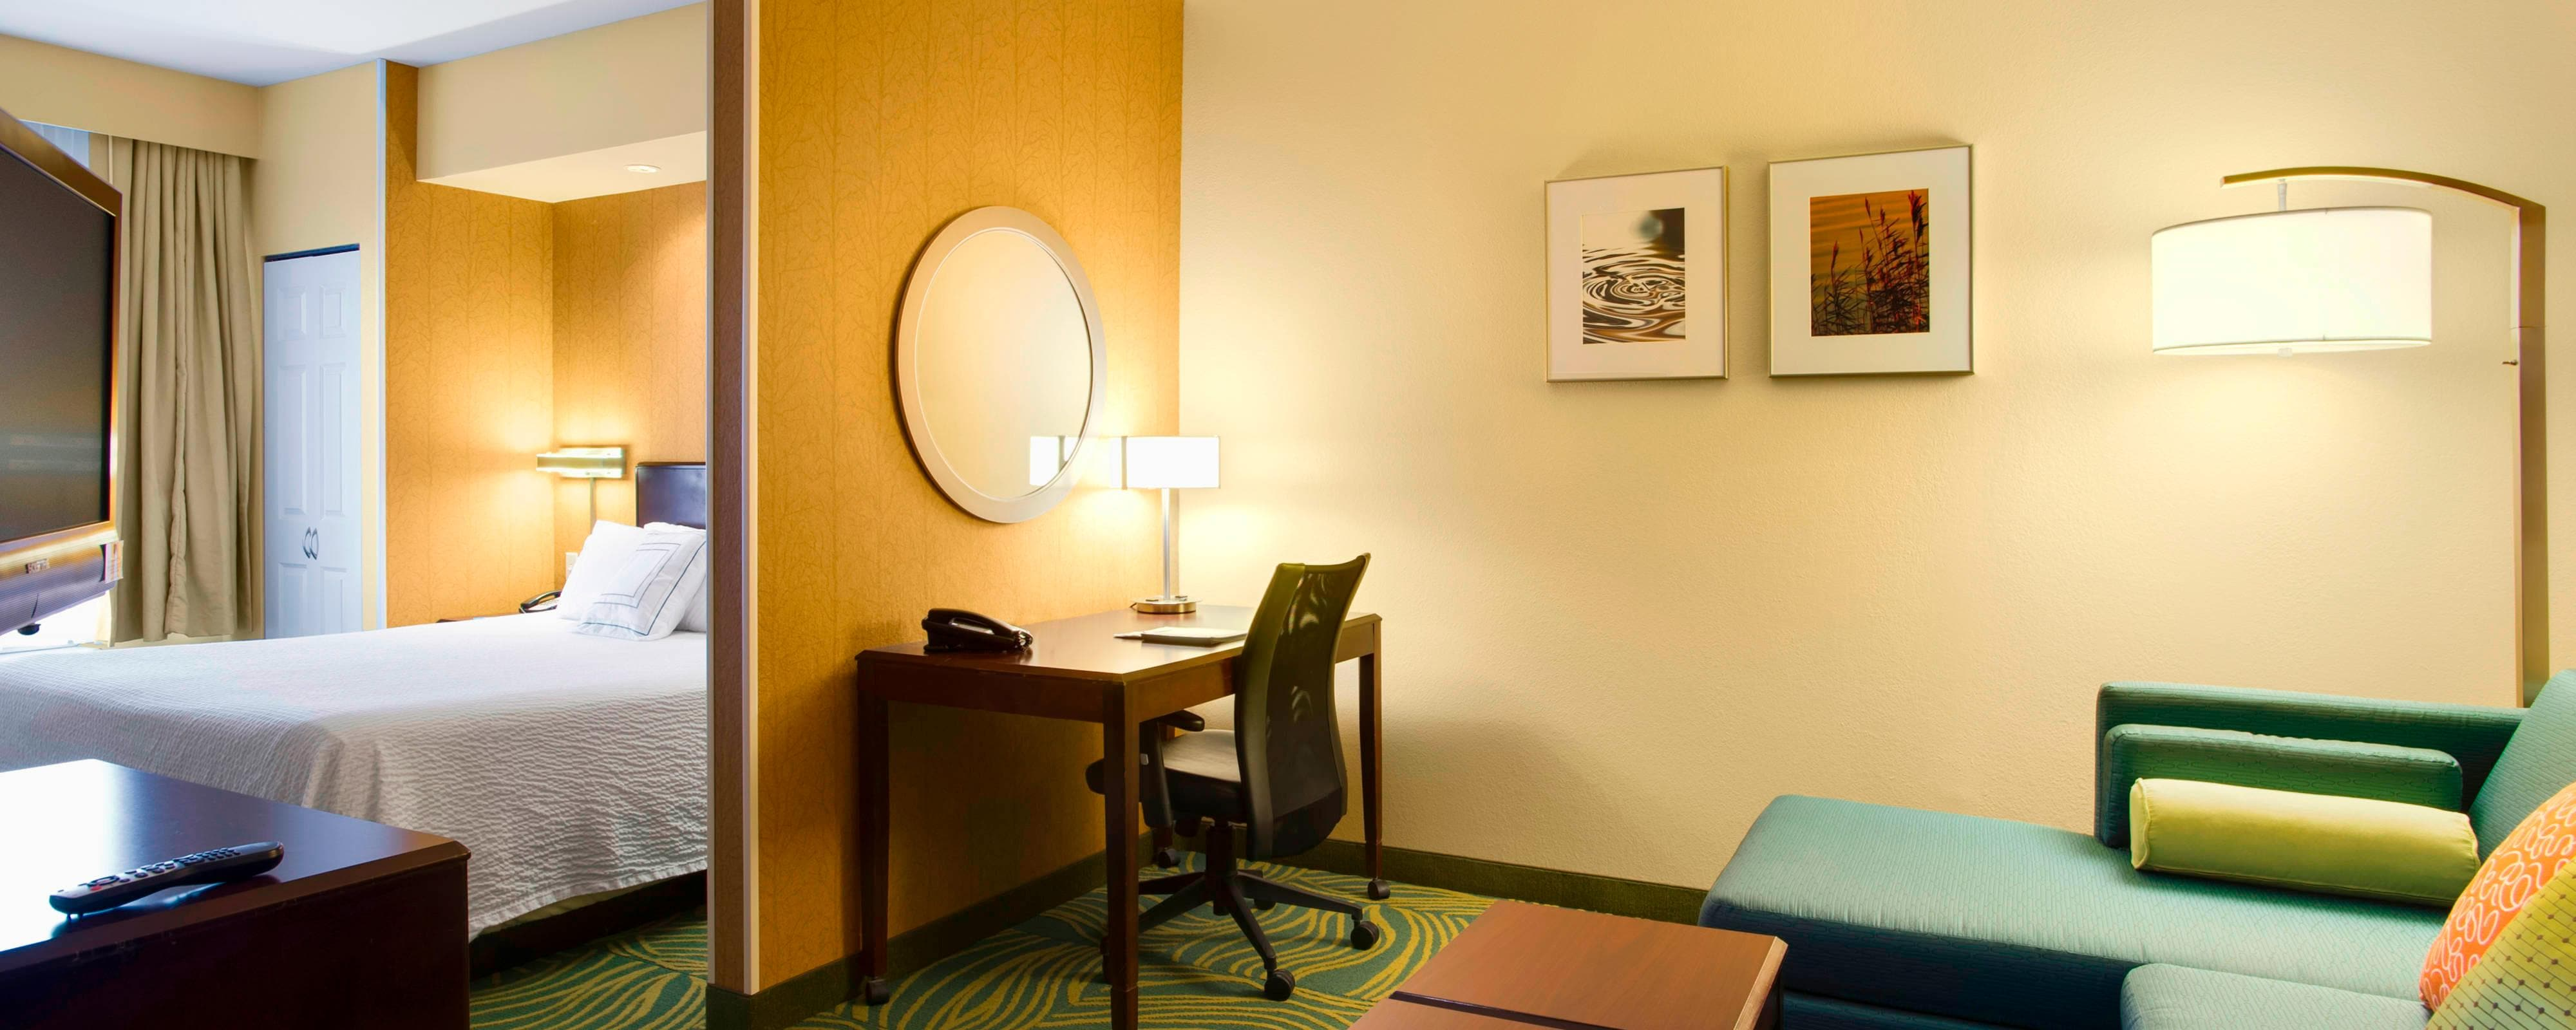 SpringHill Suites Council Bluffs Studio Suite